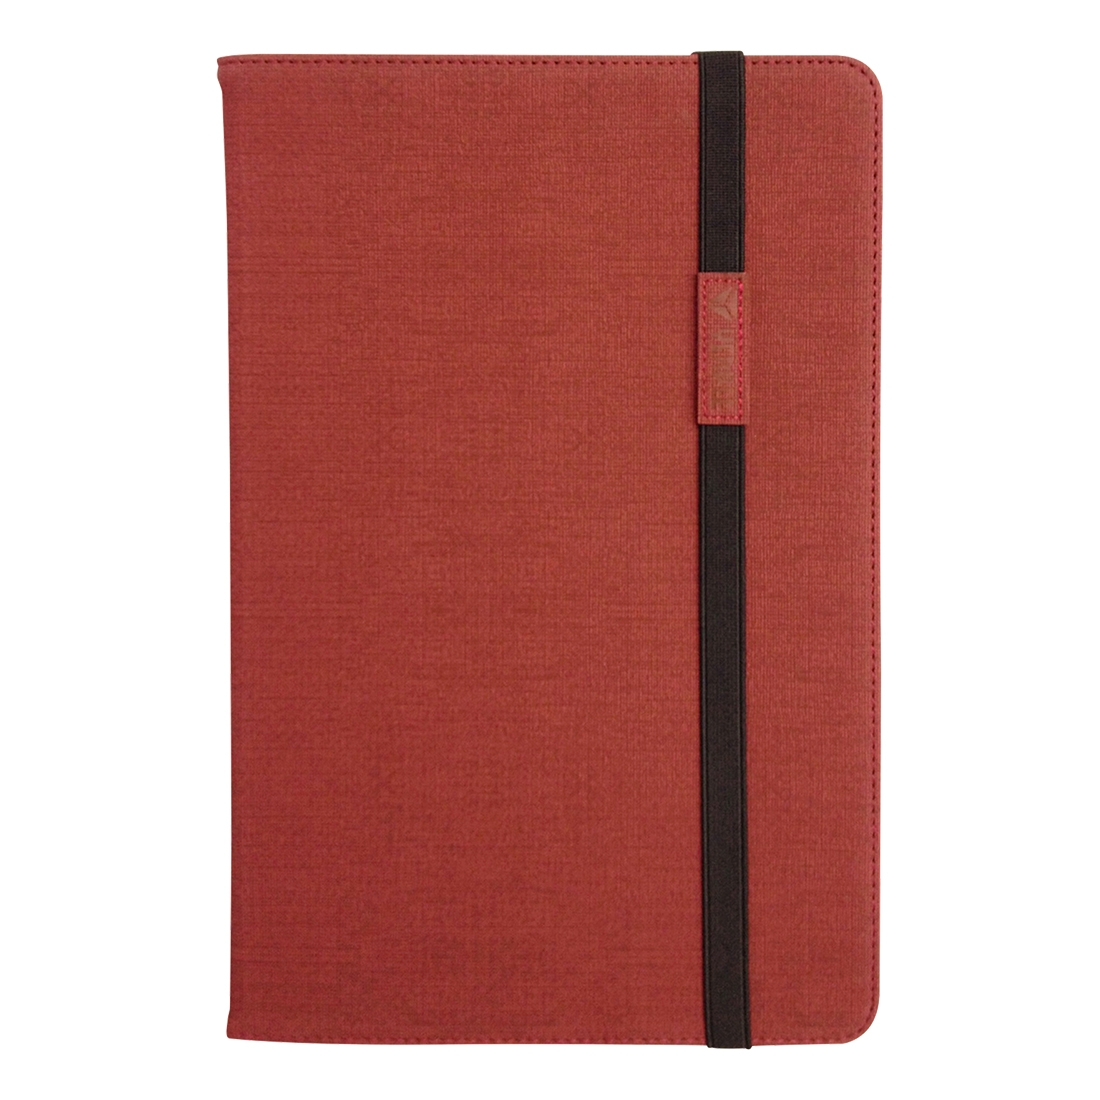 Yenkee Universal Θήκη & Stand for Tablets 10.1'' - Red (1015CT)